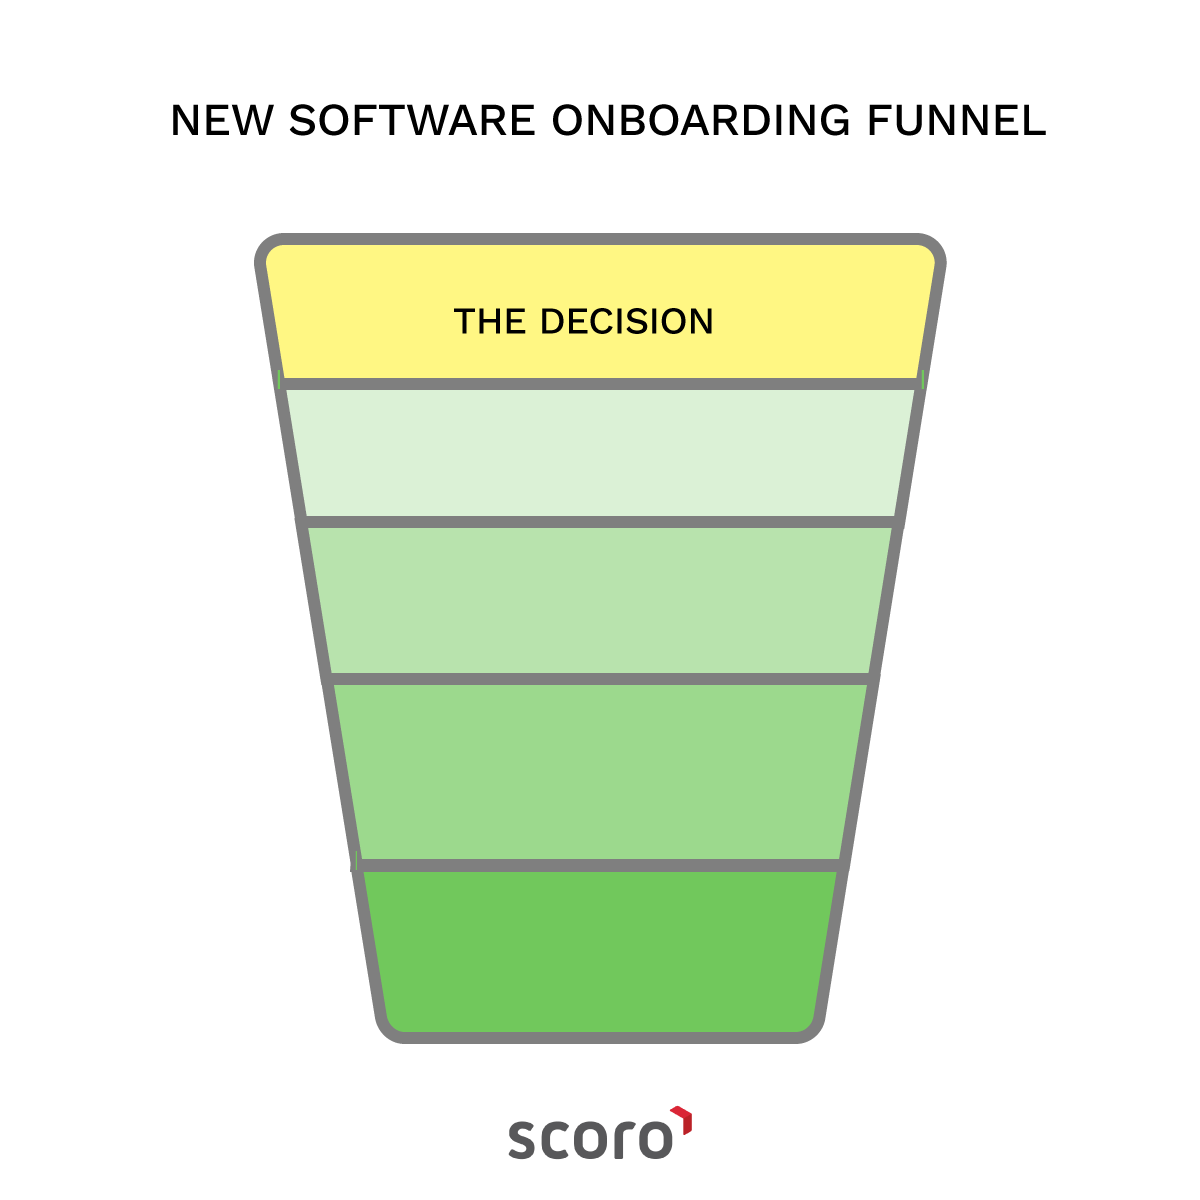 new software onboarding funnel decision